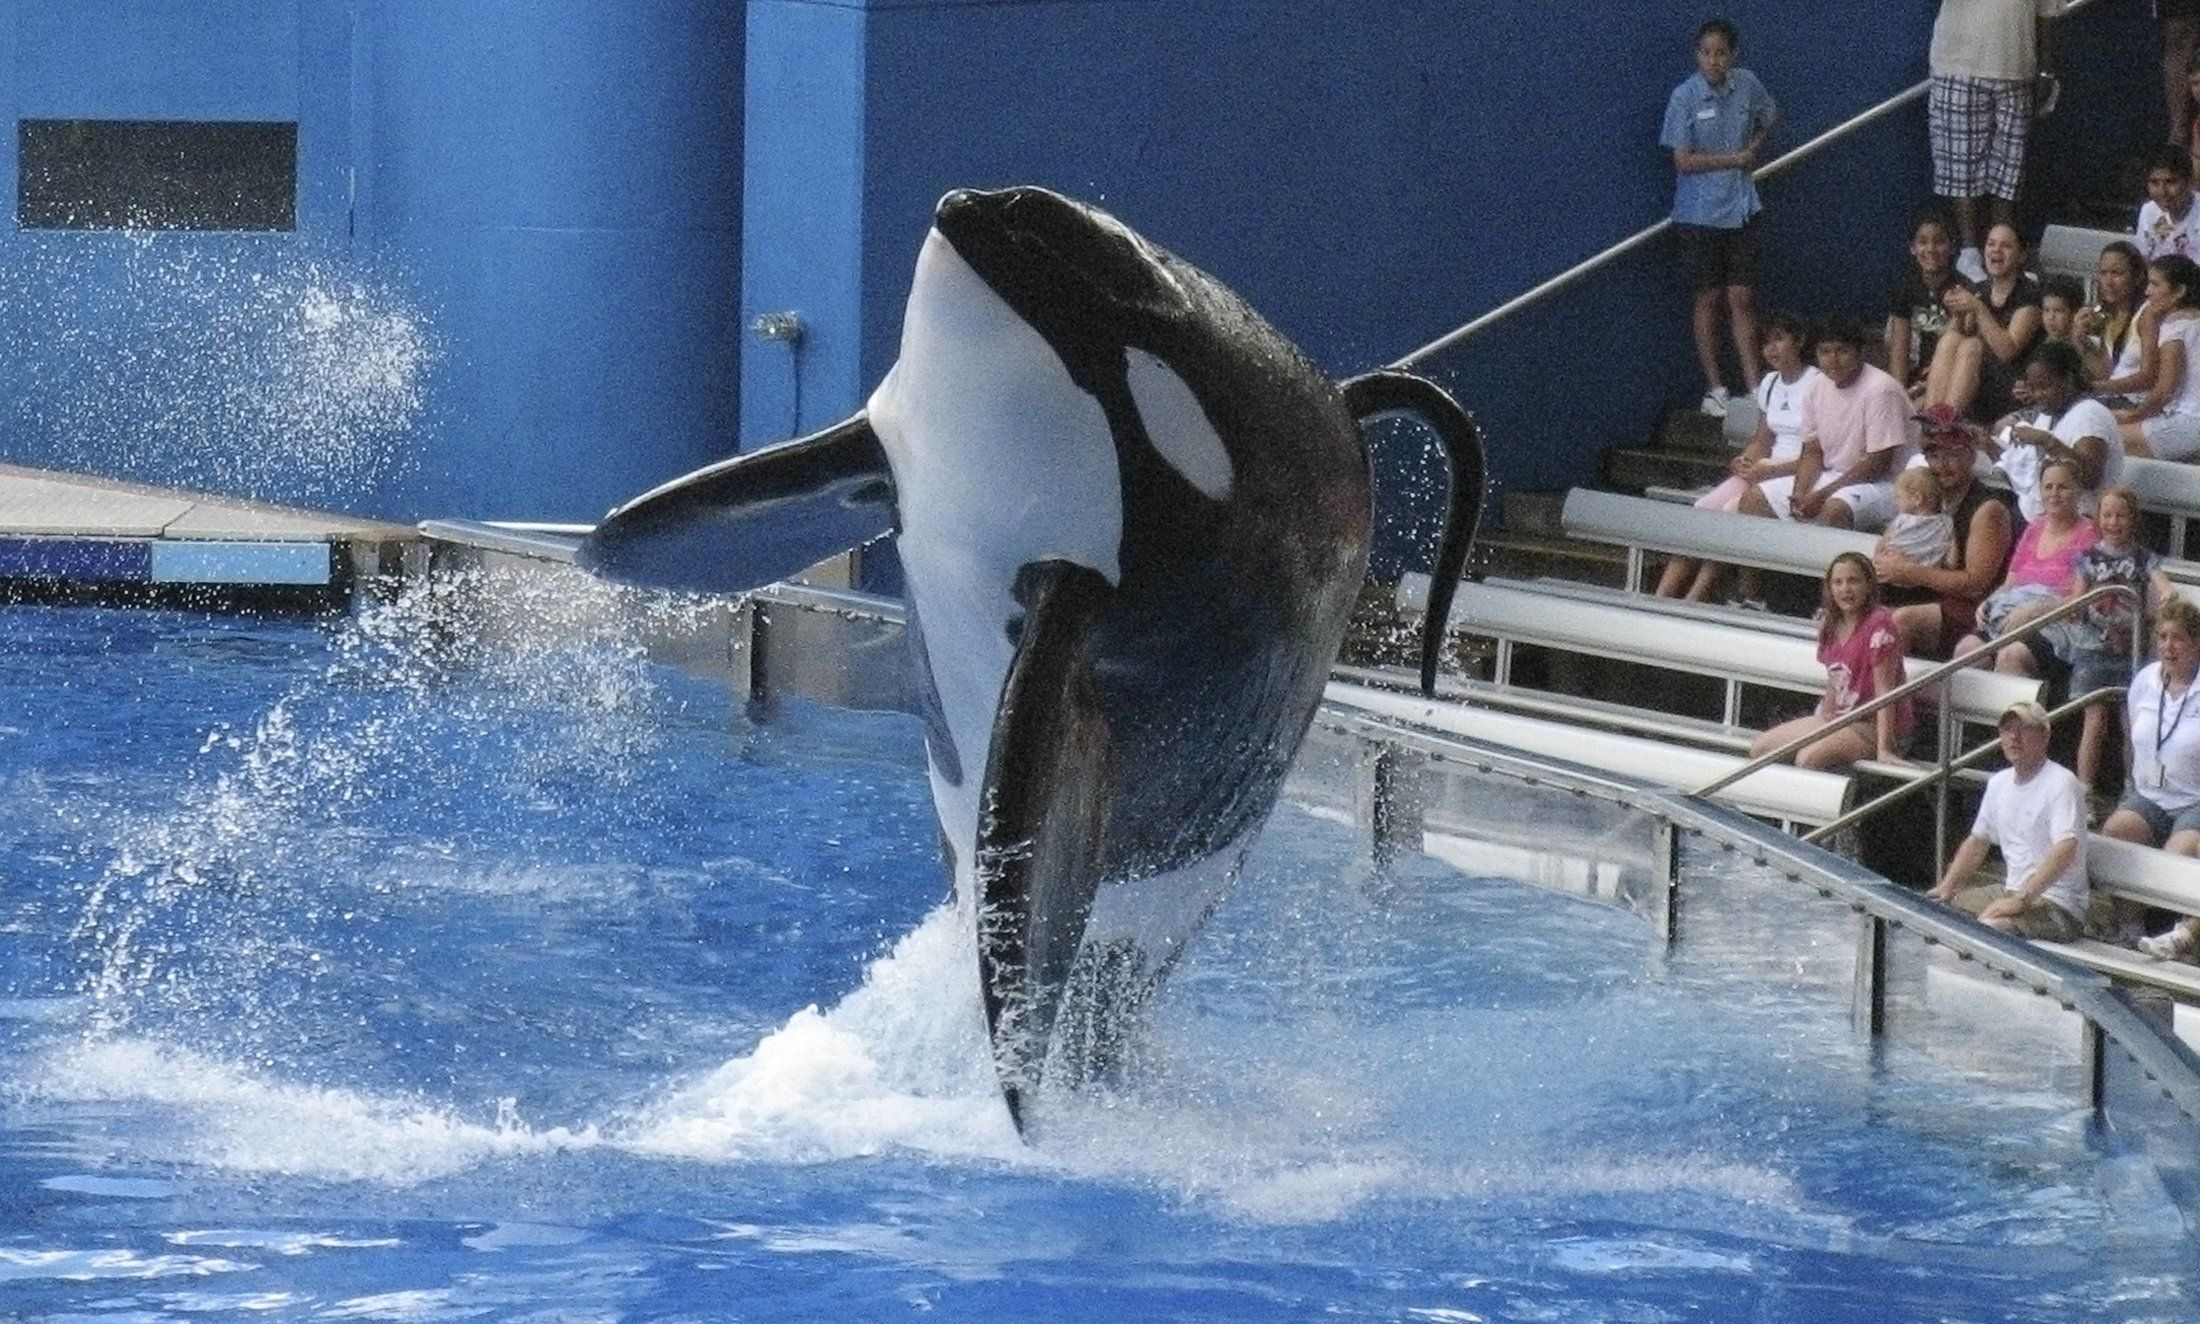 """Tillikum, a killer whale at SeaWorld amusement park, performs during the show """"Believe"""" in Orlando, in this September 3, 2009 file photo. Tillikum, who last year drowned a trainer at SeaWorld, performed publicly on March 30, 2011 for the first time since the death. REUTERS/Mathieu Belanger/Files (UNITED STATES - Tags: ANIMALS)"""